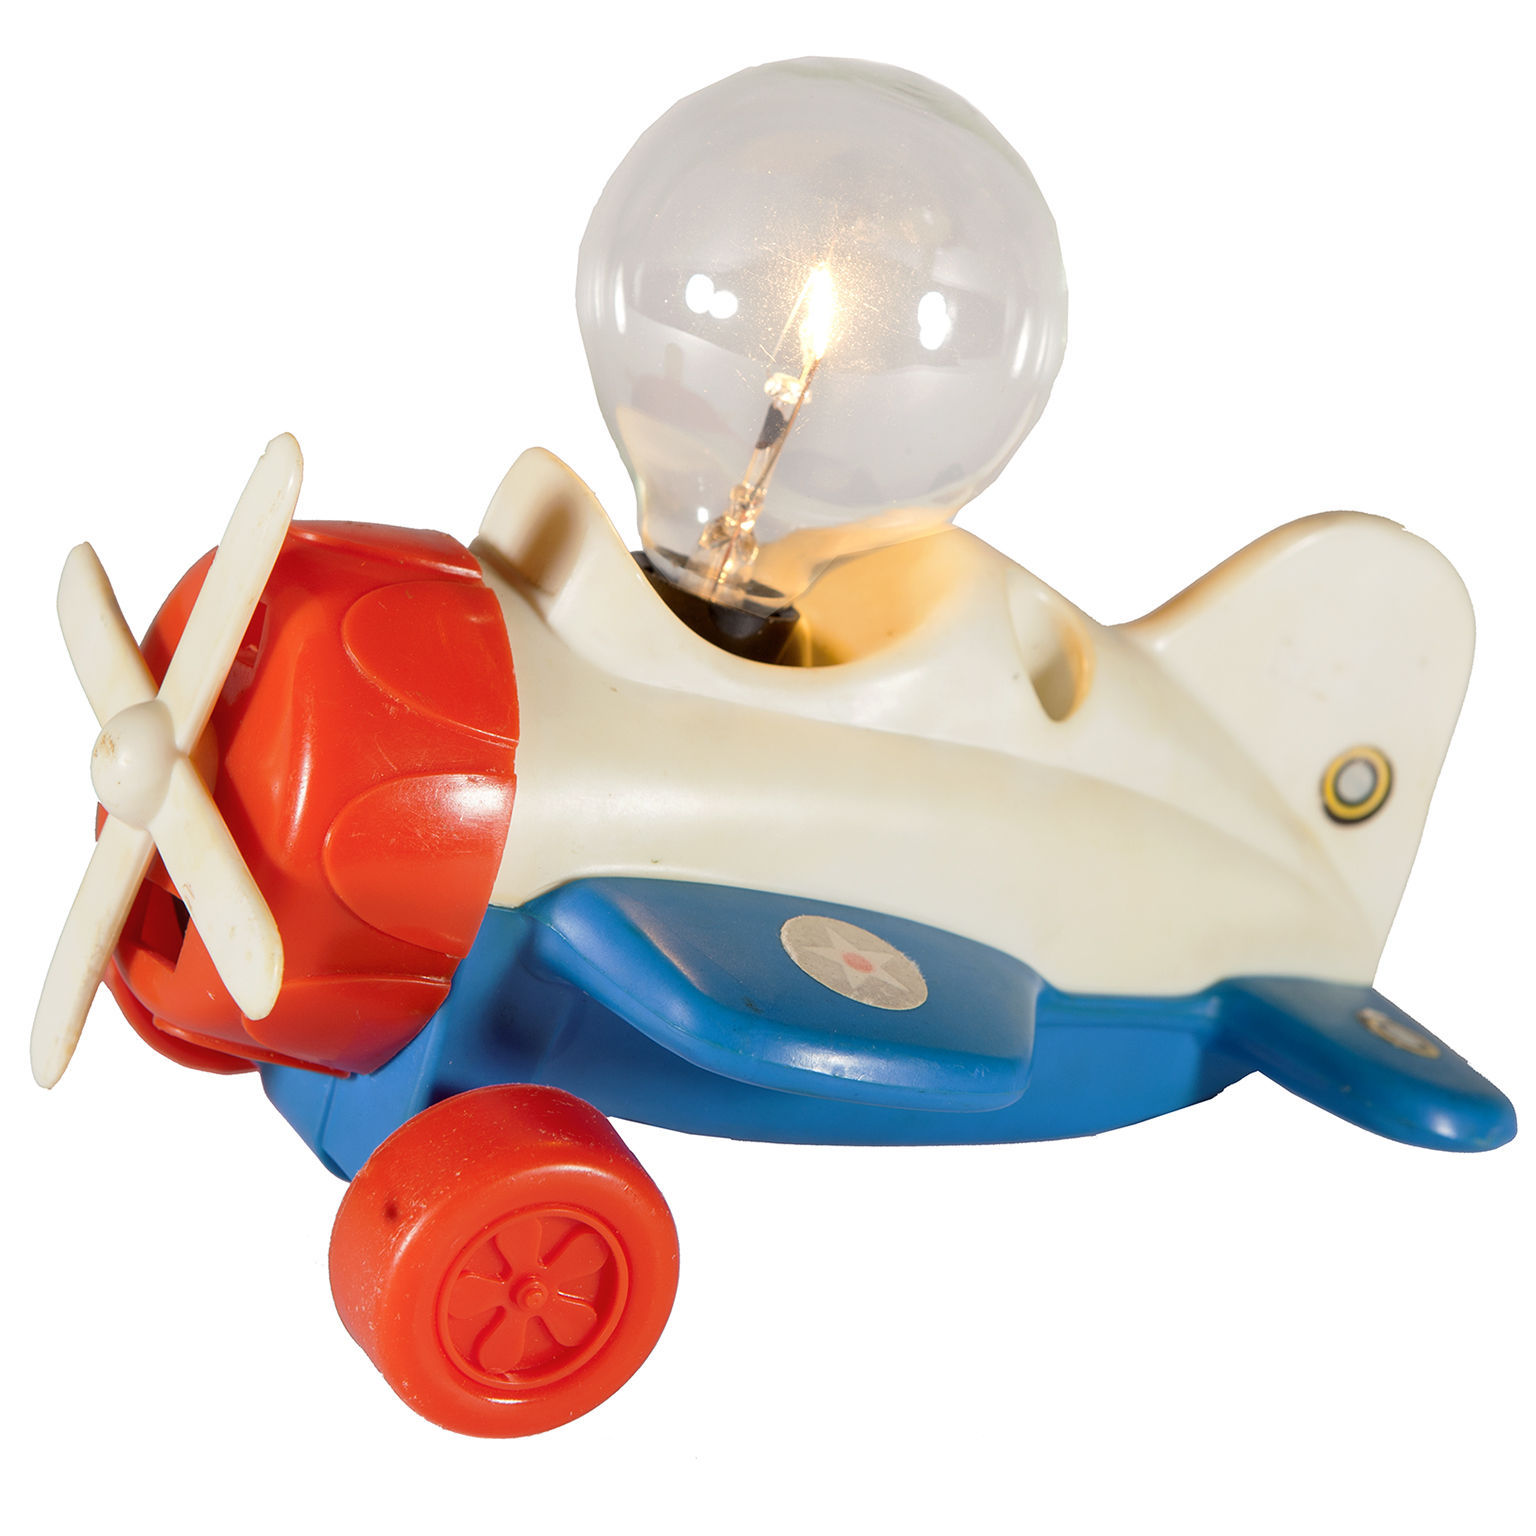 Vintage Toy Airplane Mini Lamp - Small Red Blue Plane Lamp - Free Shipping